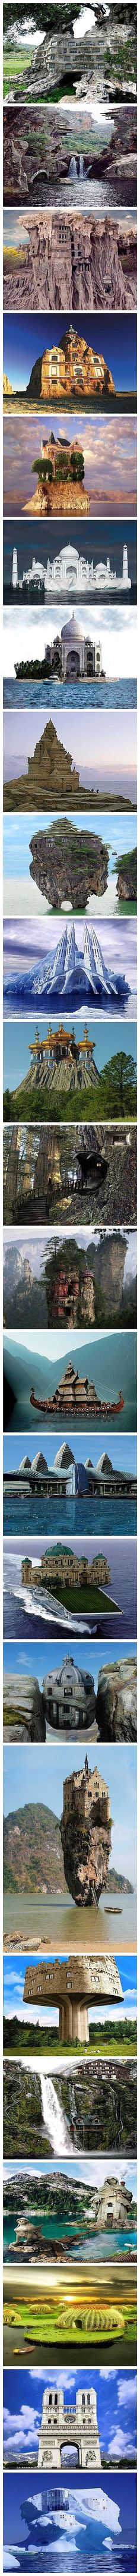 24 amazing buildings around the world.